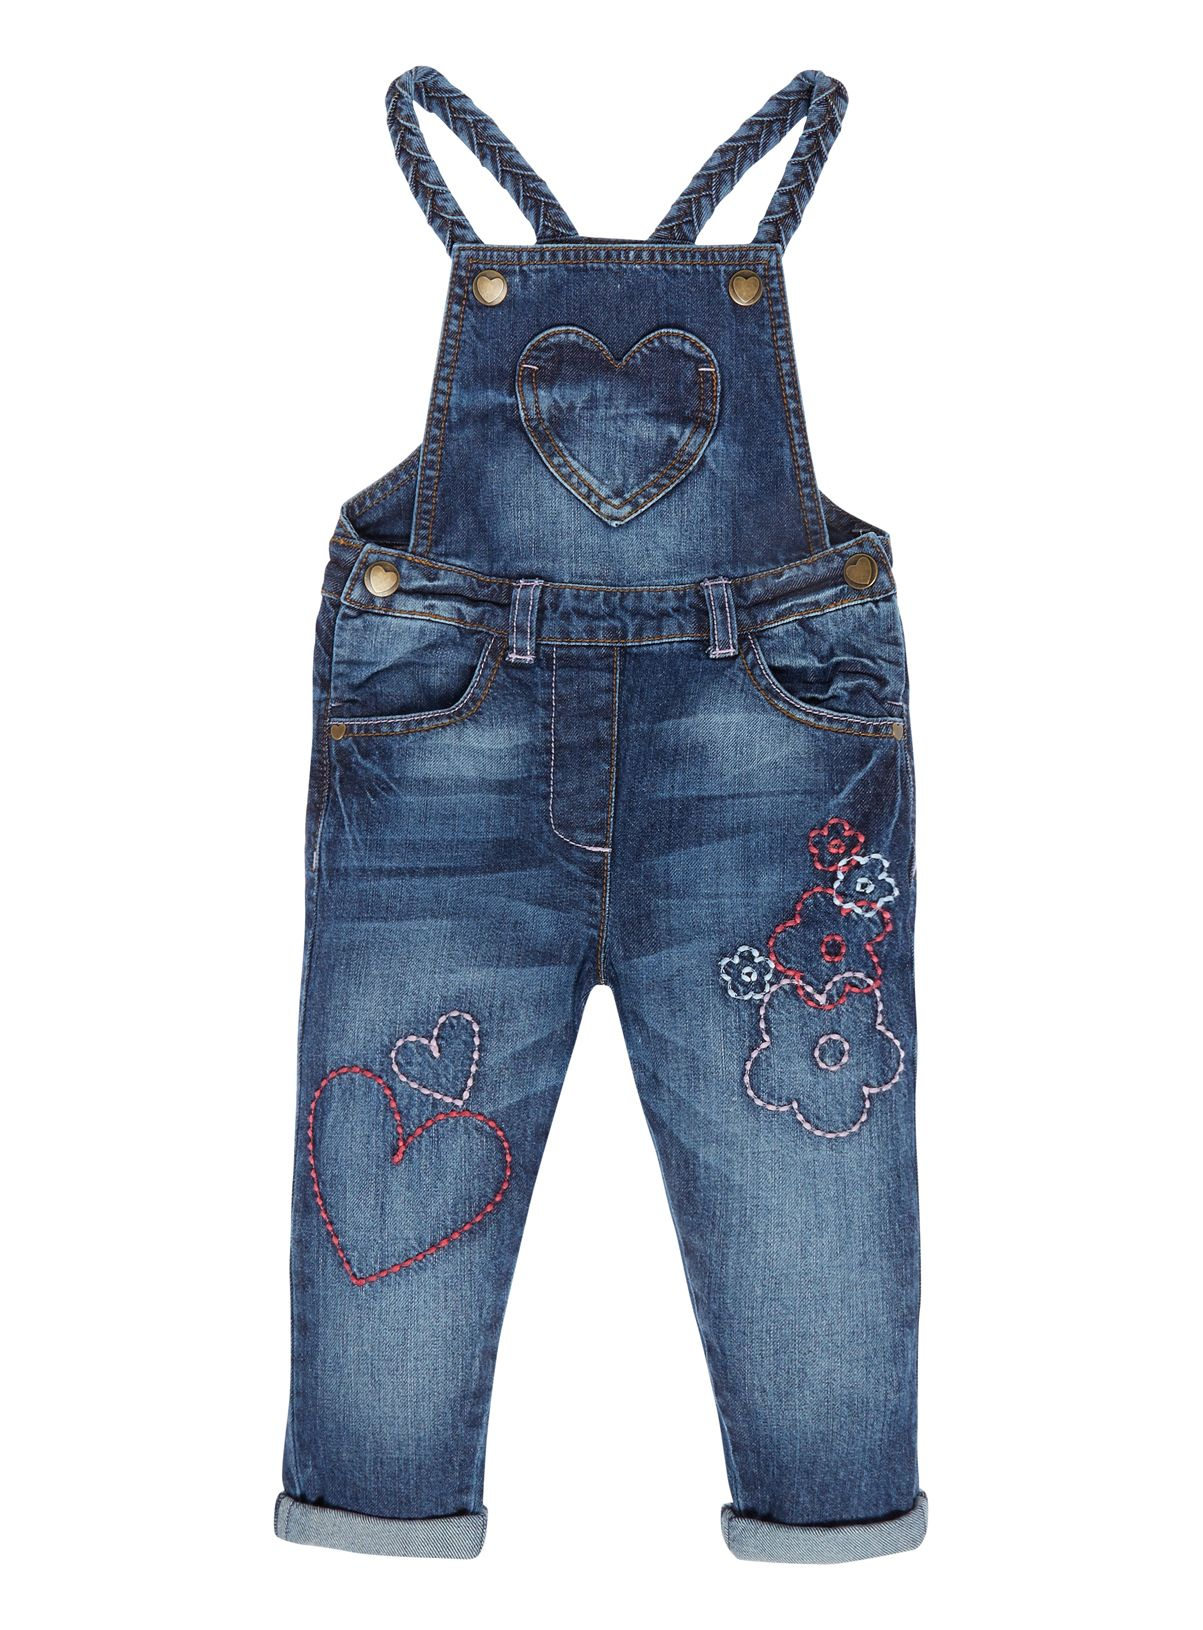 Make a charming addition to her summer line-up with these adorable ...